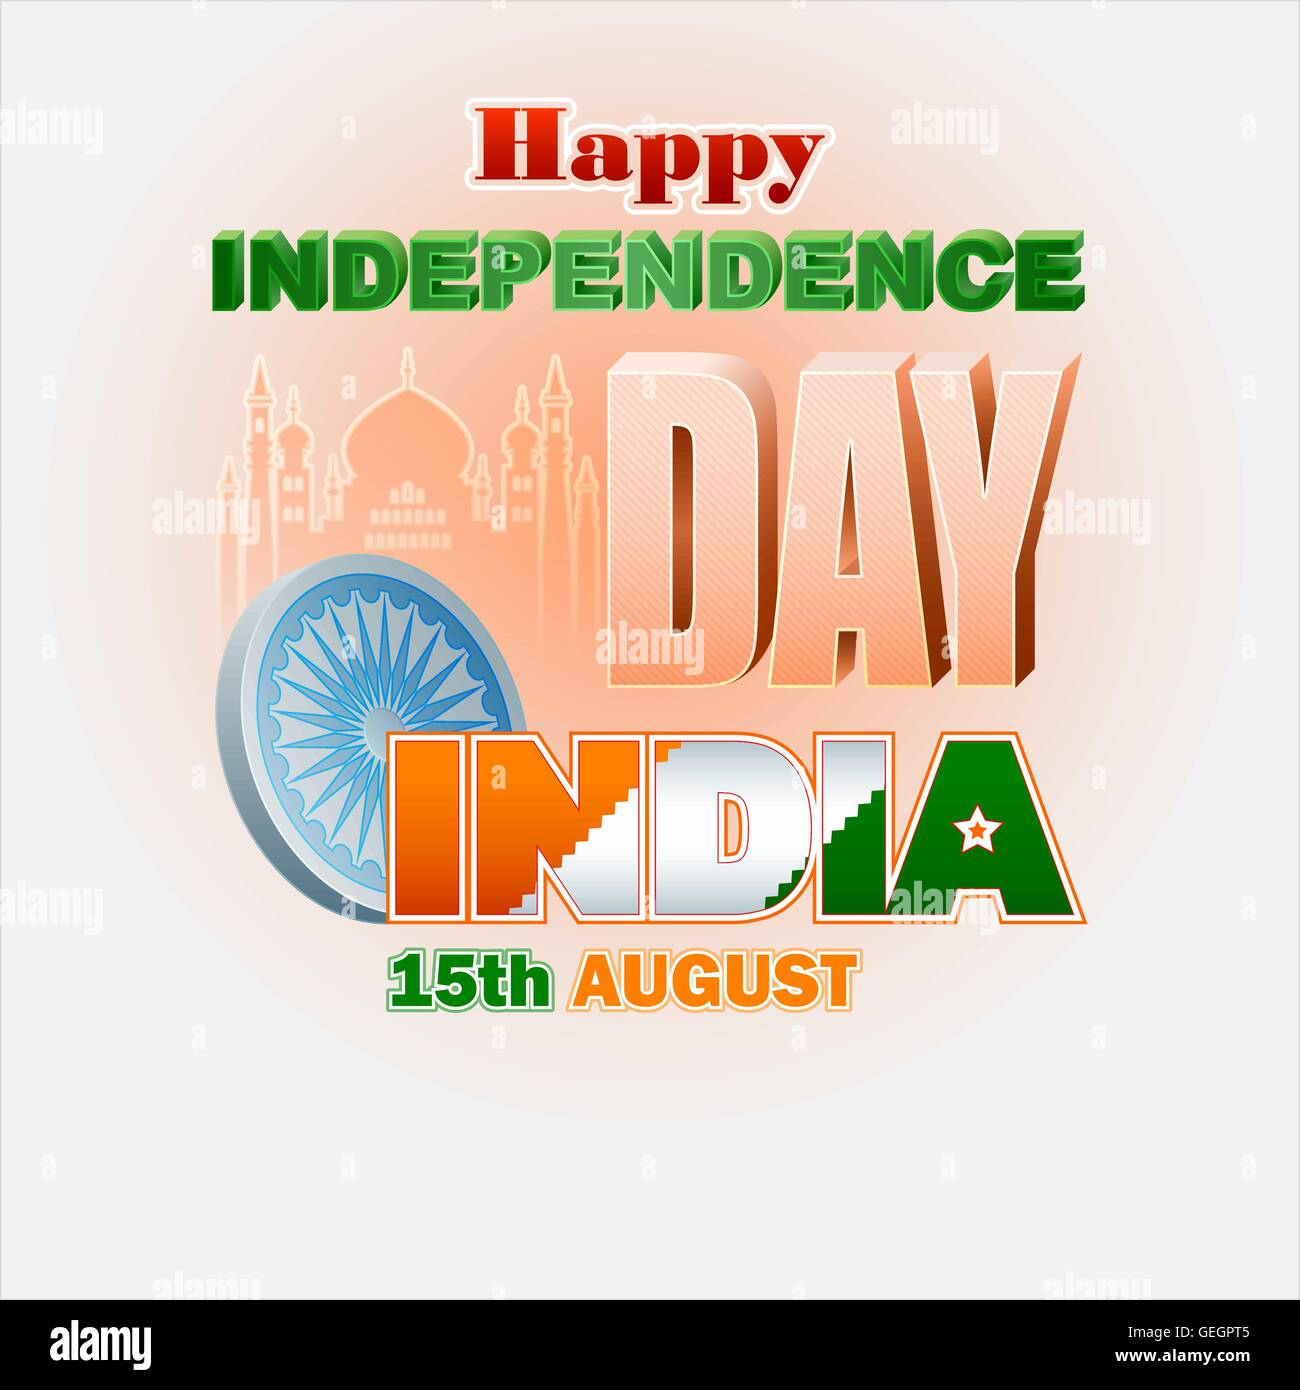 Holidays background with ashoka wheel symbol and text in indian holidays background with ashoka wheel symbol and text in indian national colors for 15th august independence day of india biocorpaavc Gallery